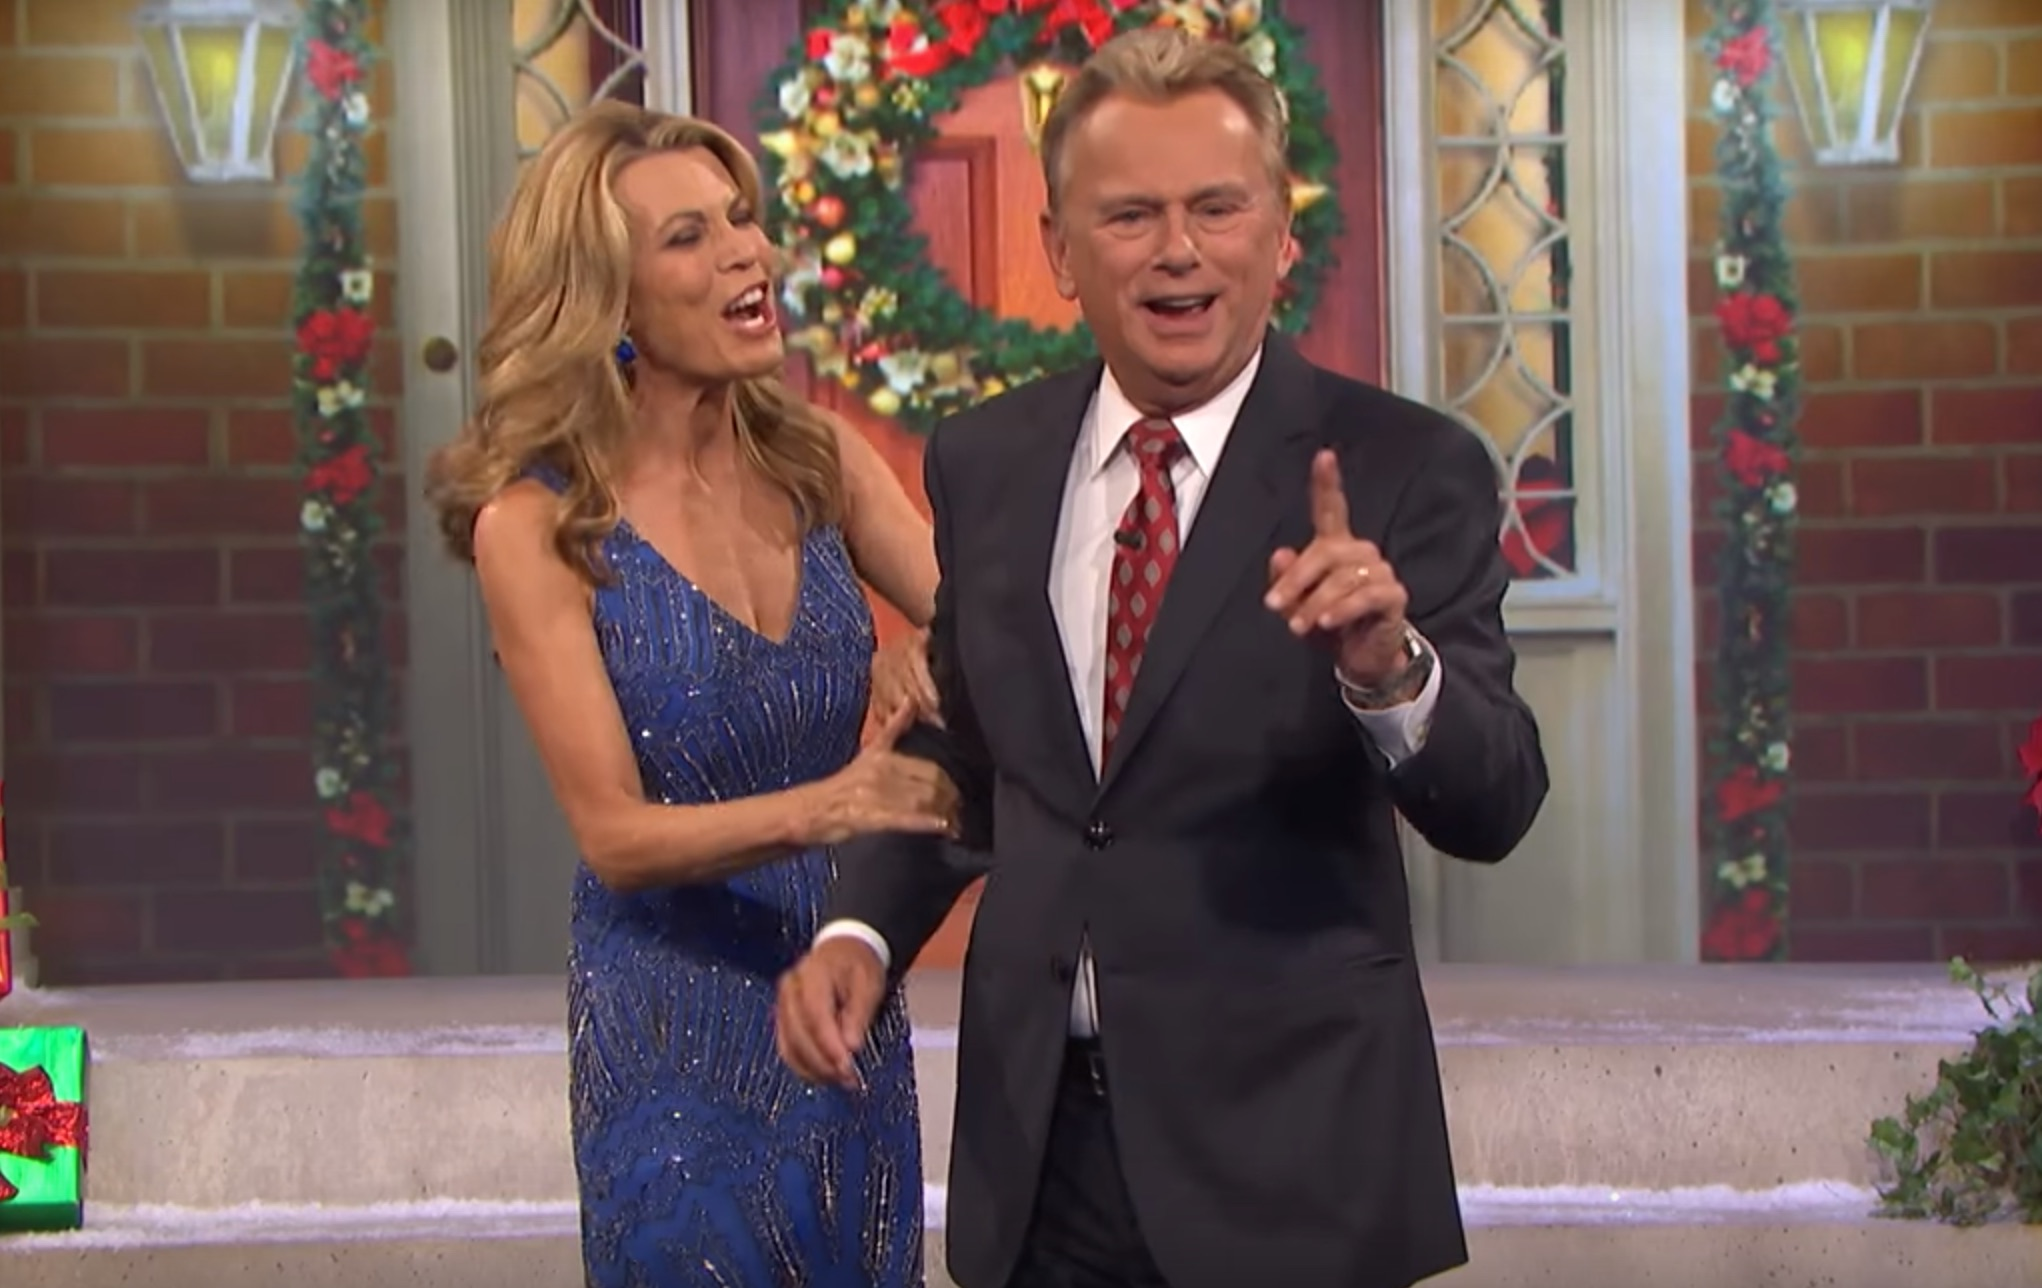 Vanna White's hilarious wardrobe malfunction is the perfect holiday fail